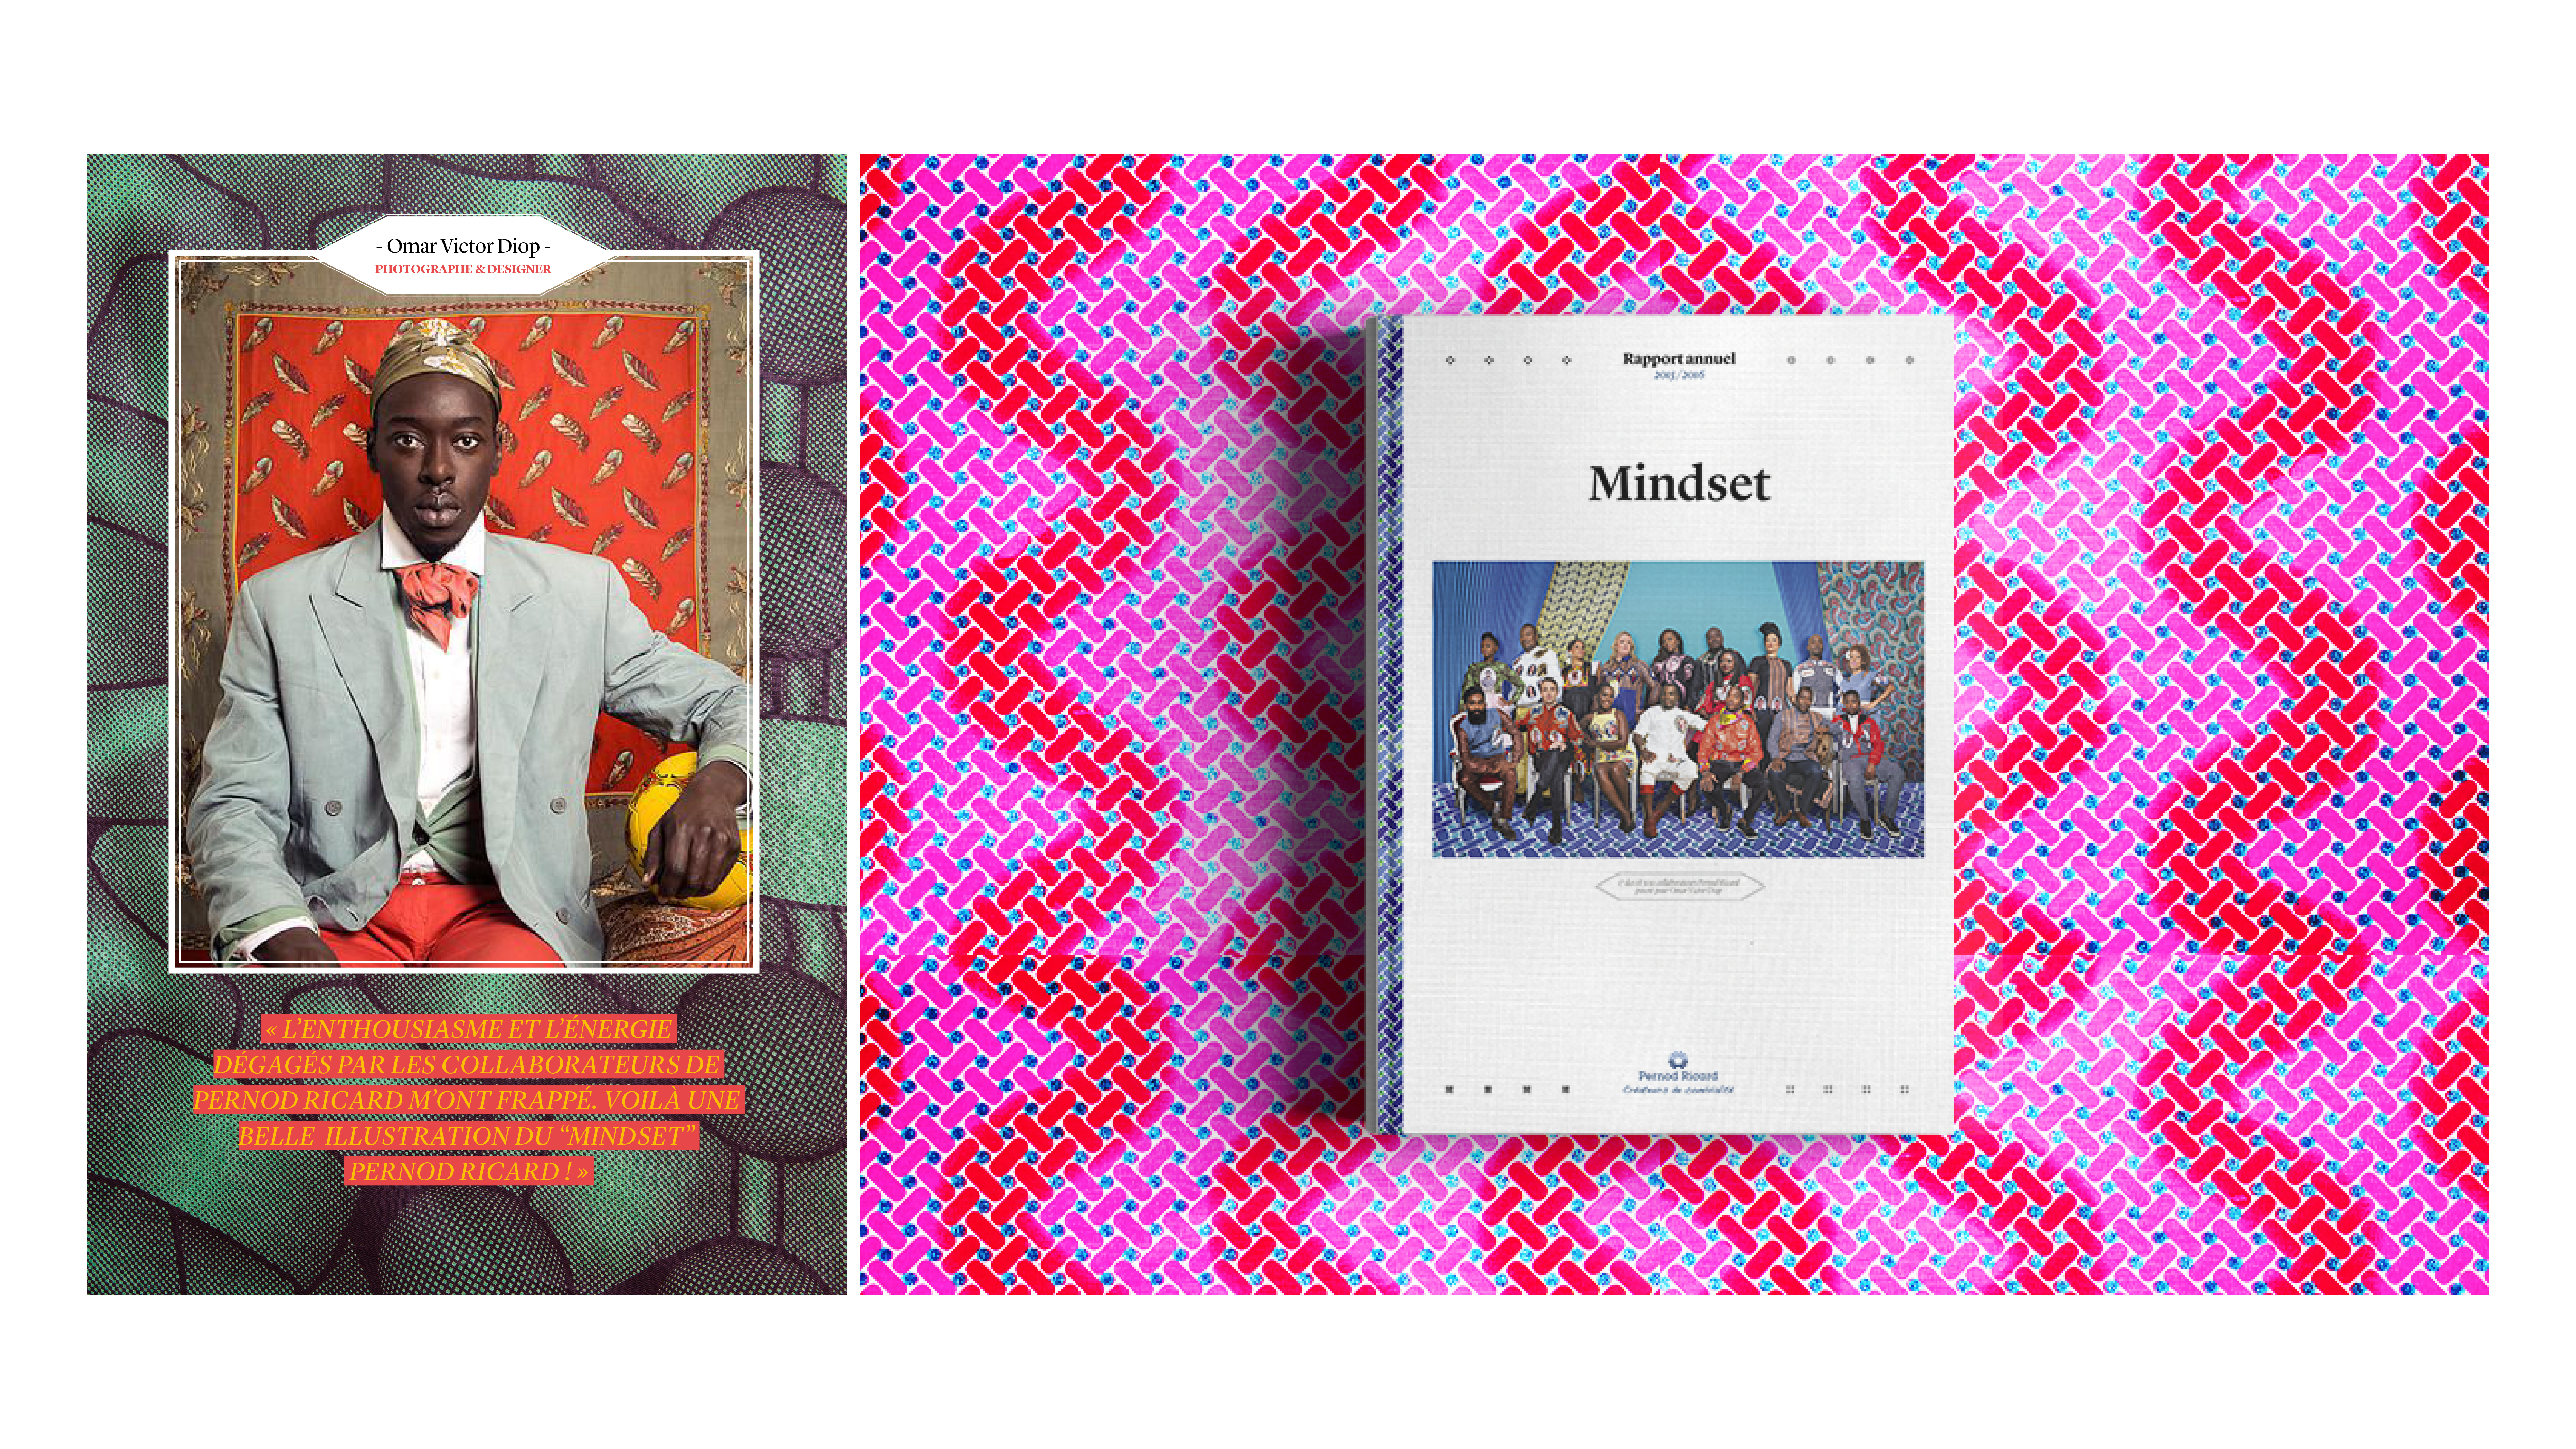 Pernod Ricard 2015/2016 Annual Report - Mindset Thumbnail